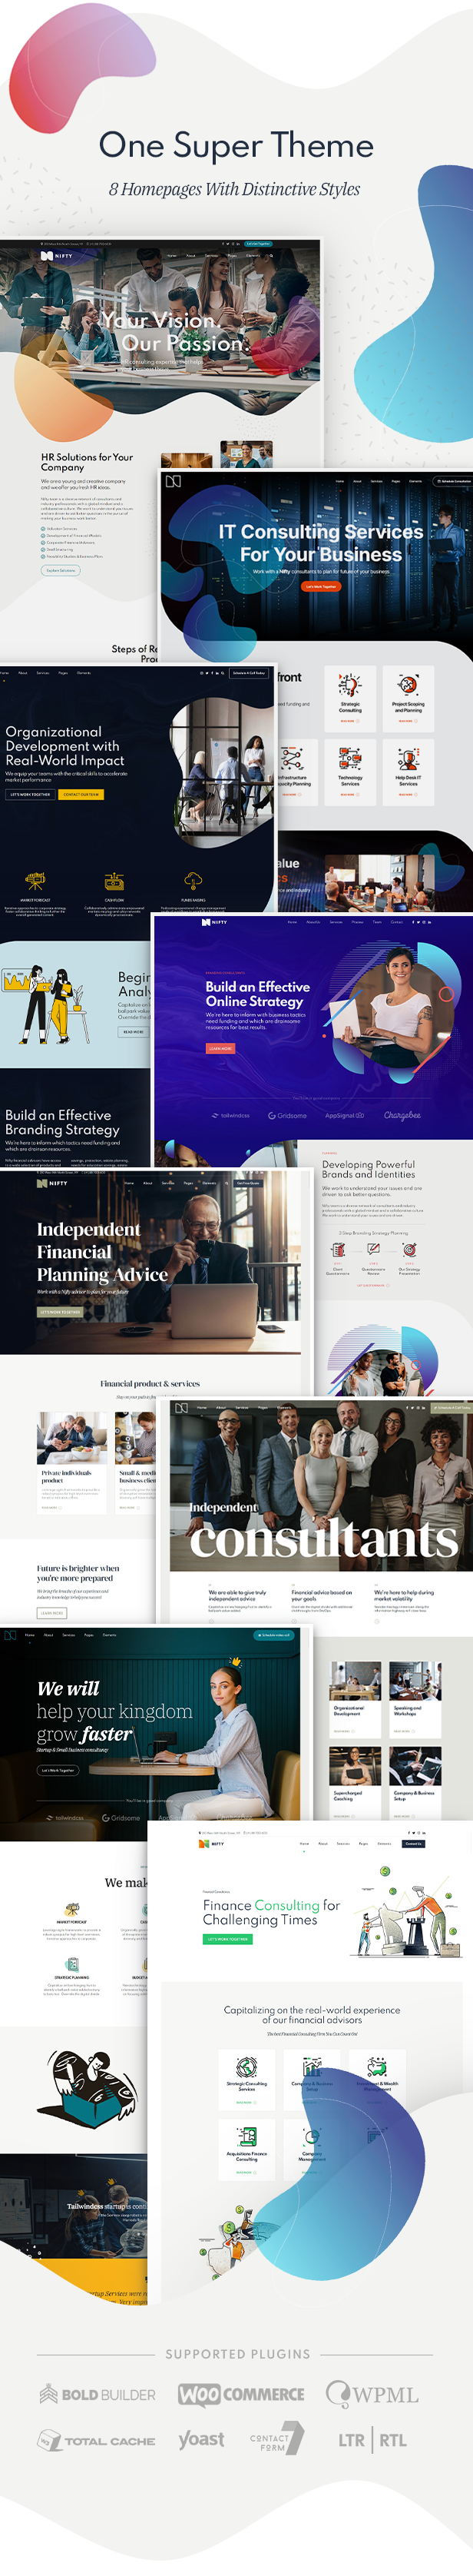 Nifty - Business Consulting WordPress Theme - 4